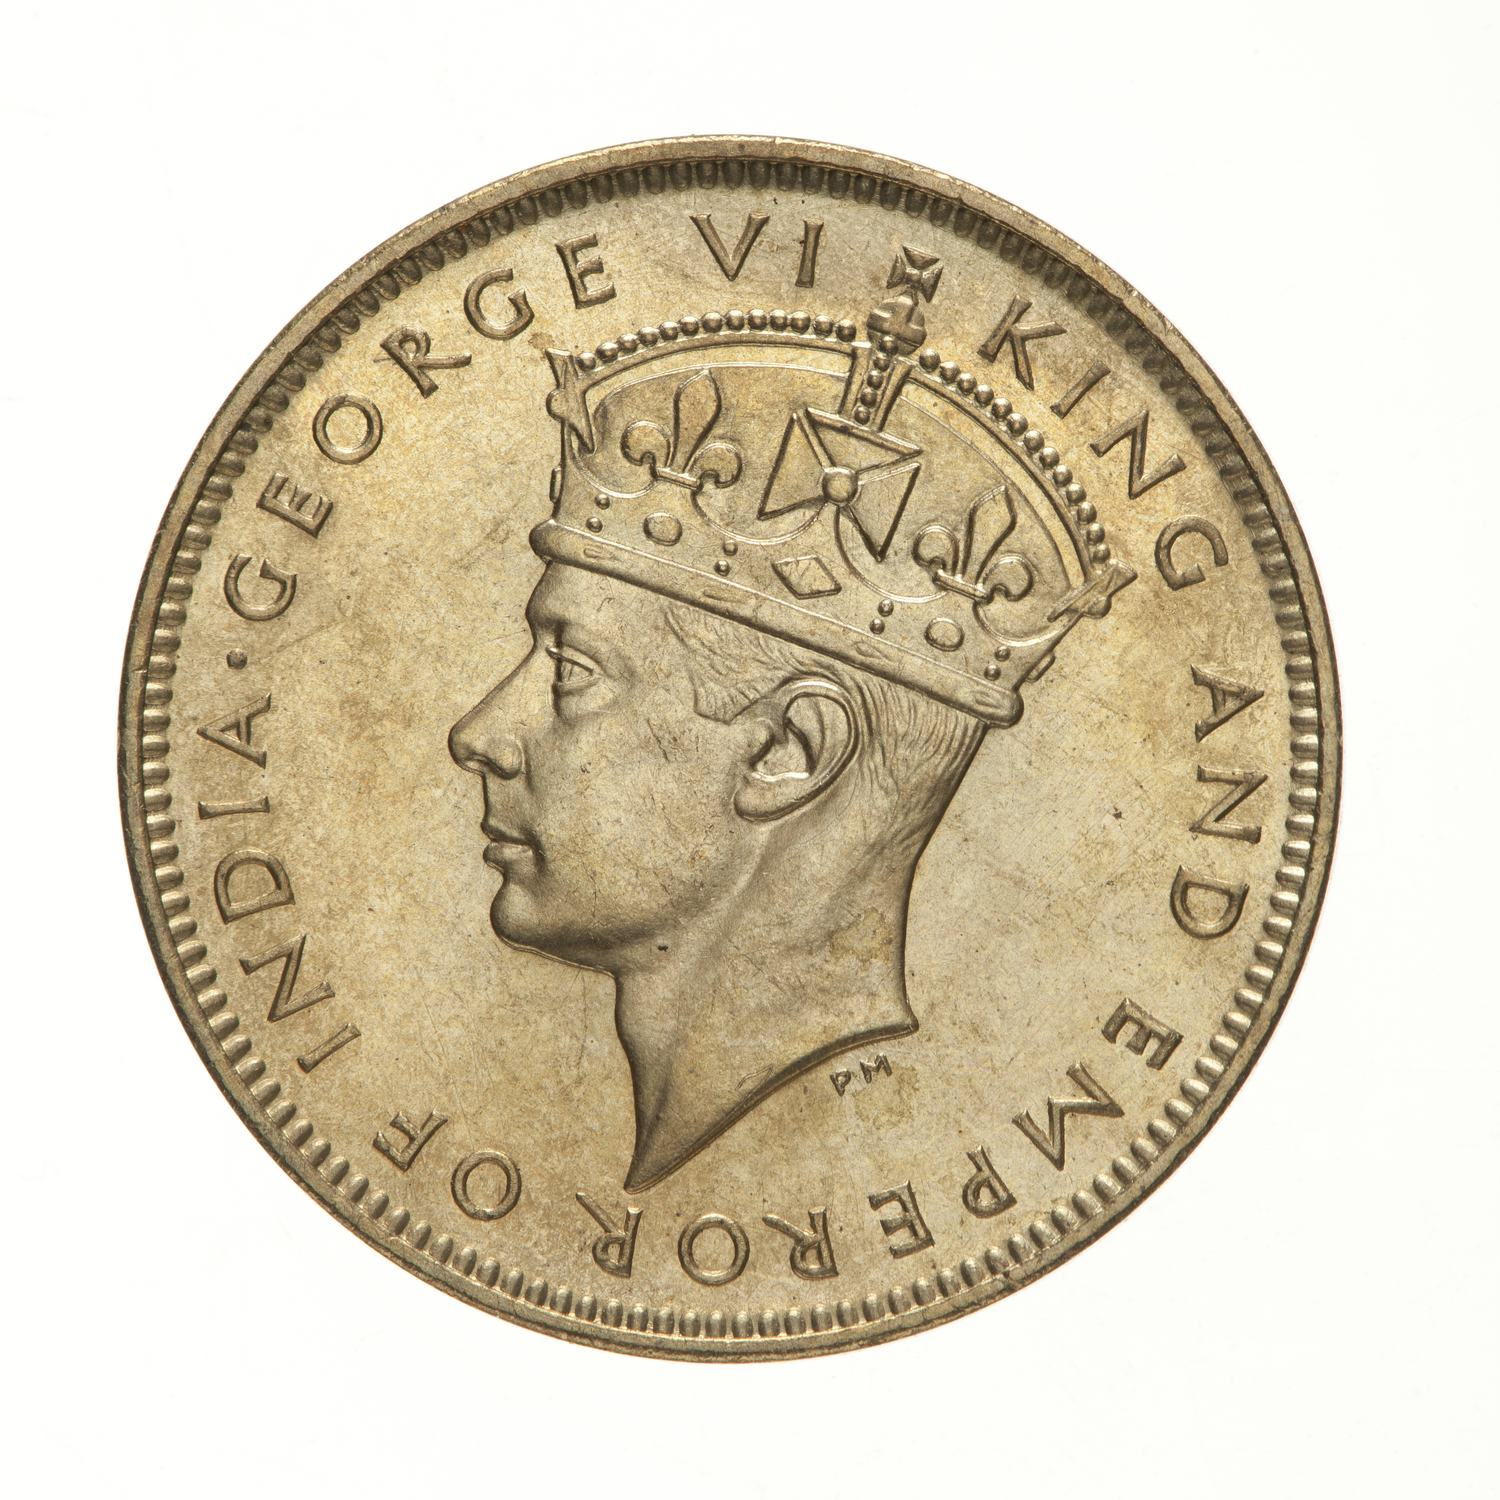 Five Cents: Photo Coin - 5 Cents, British Honduras (Belize), 1942